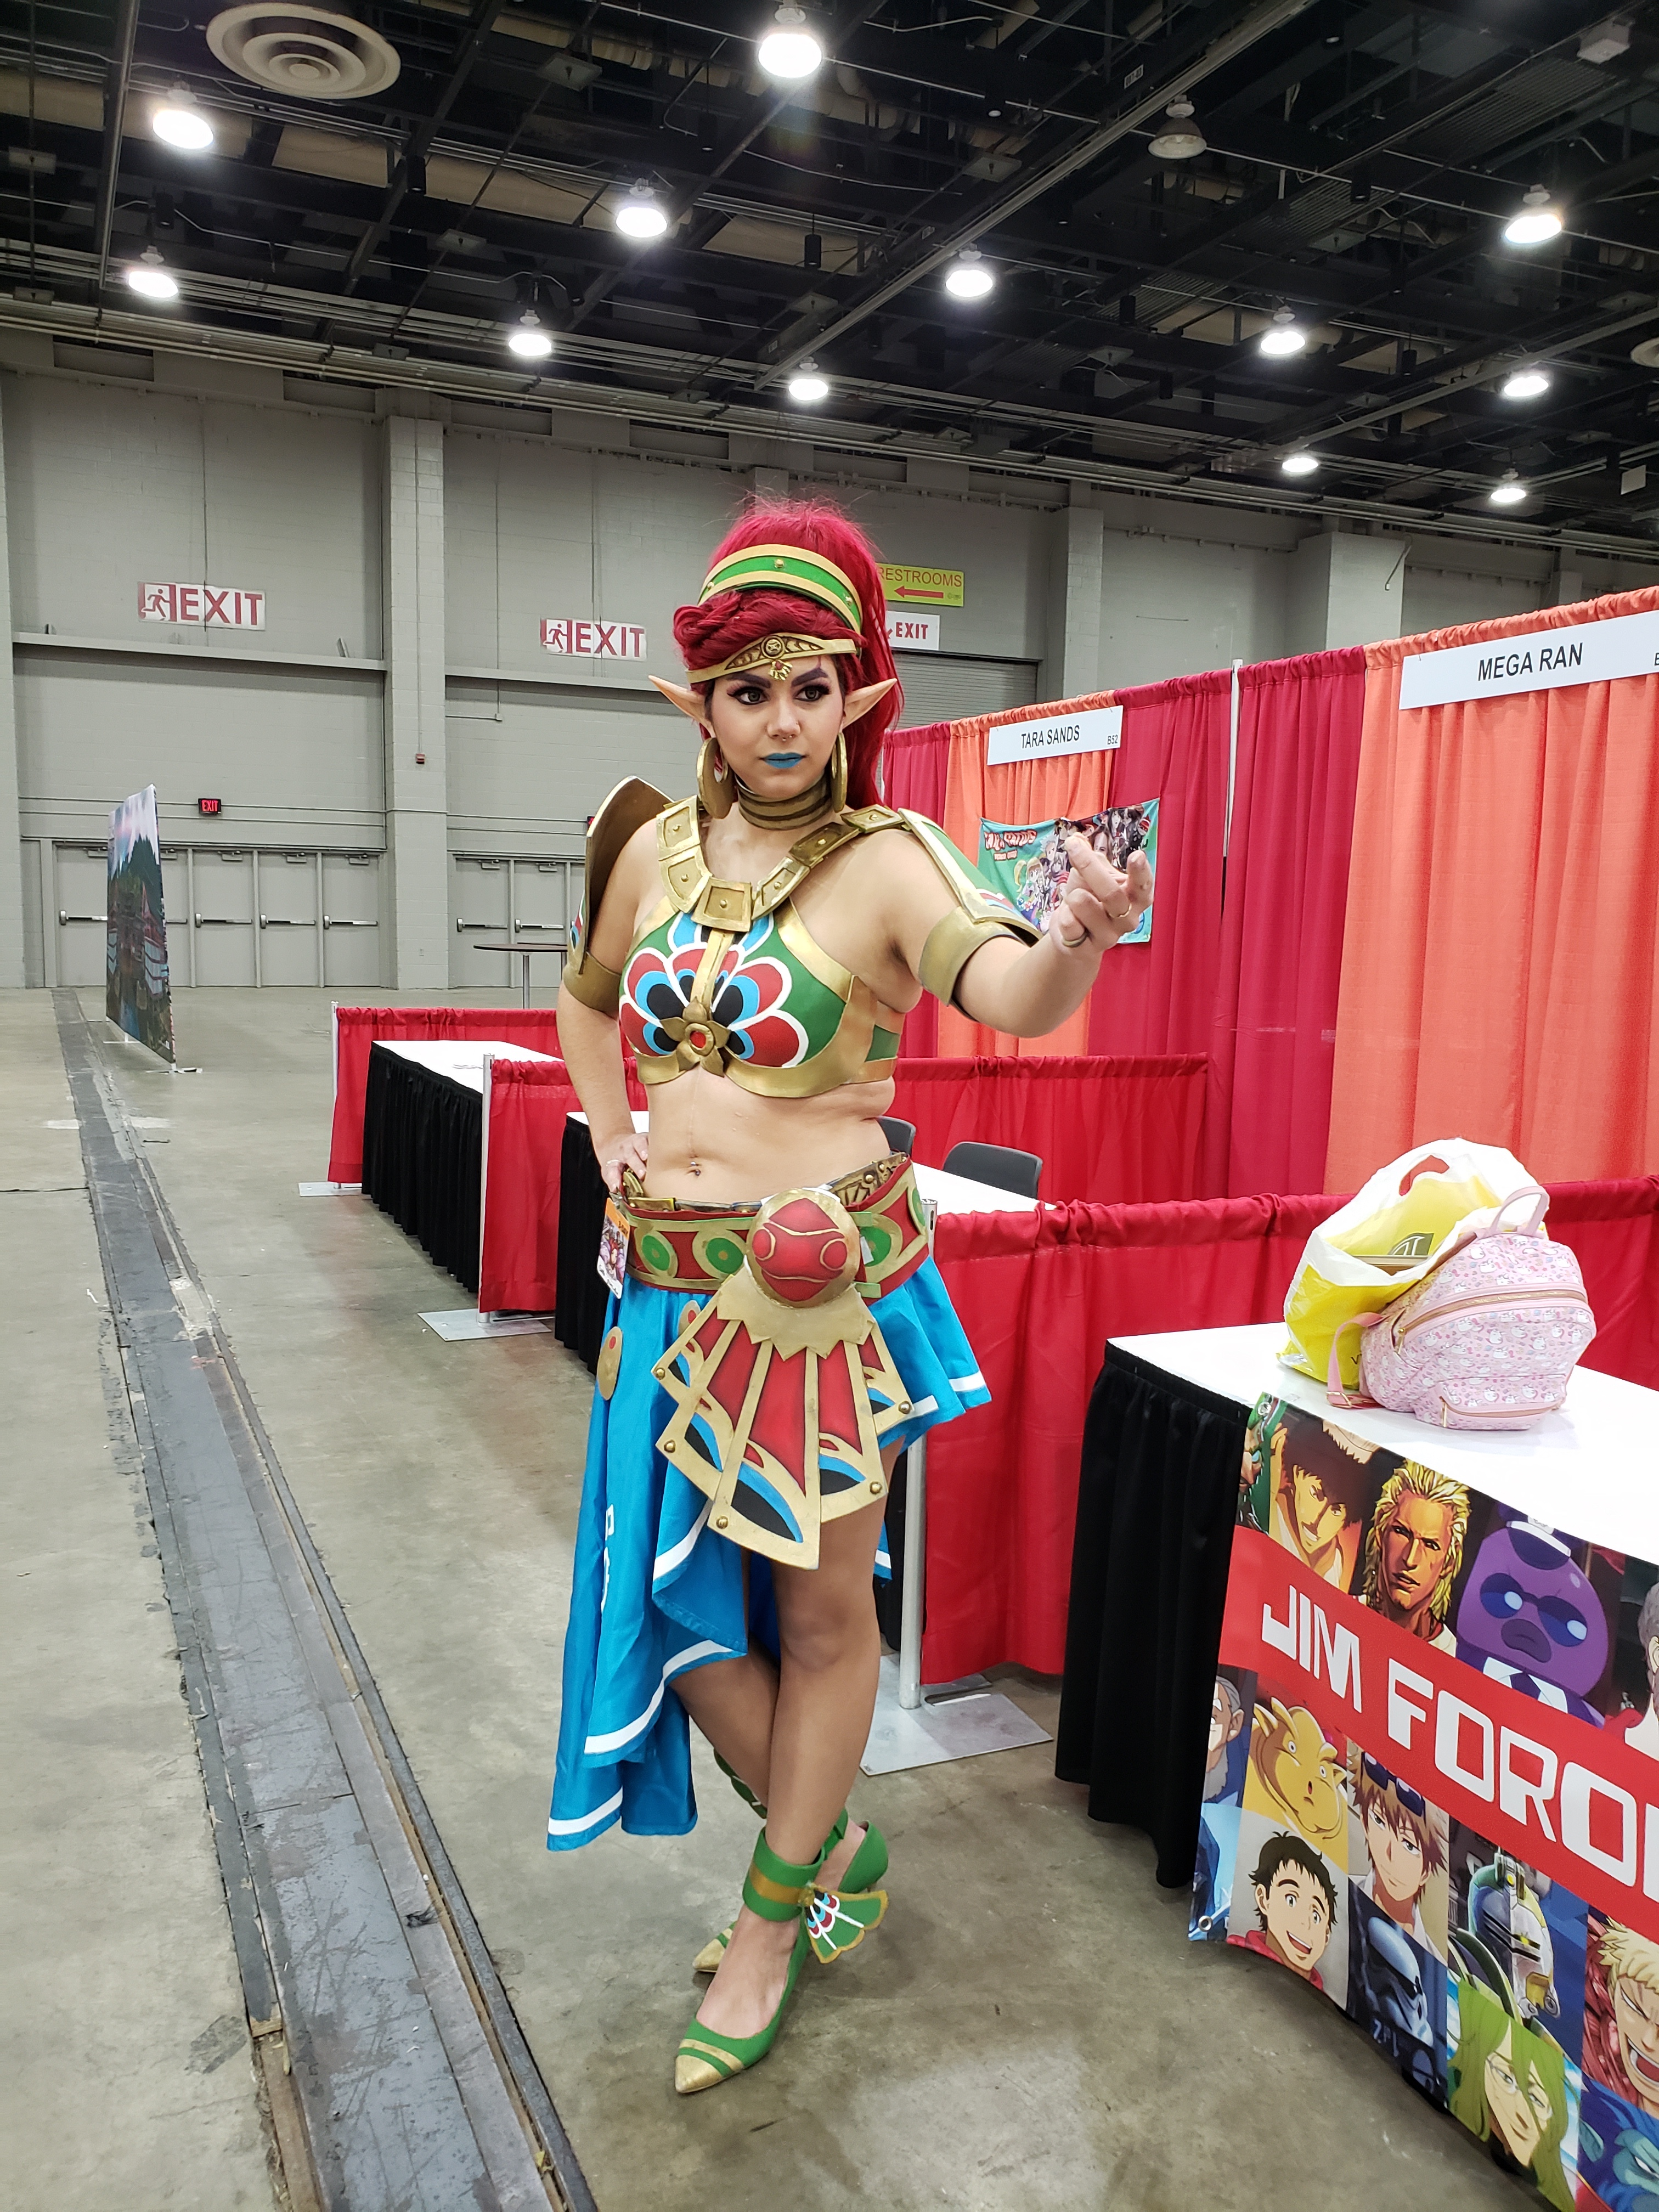 A woman cosplaying as Buliara from Legend of Zelda